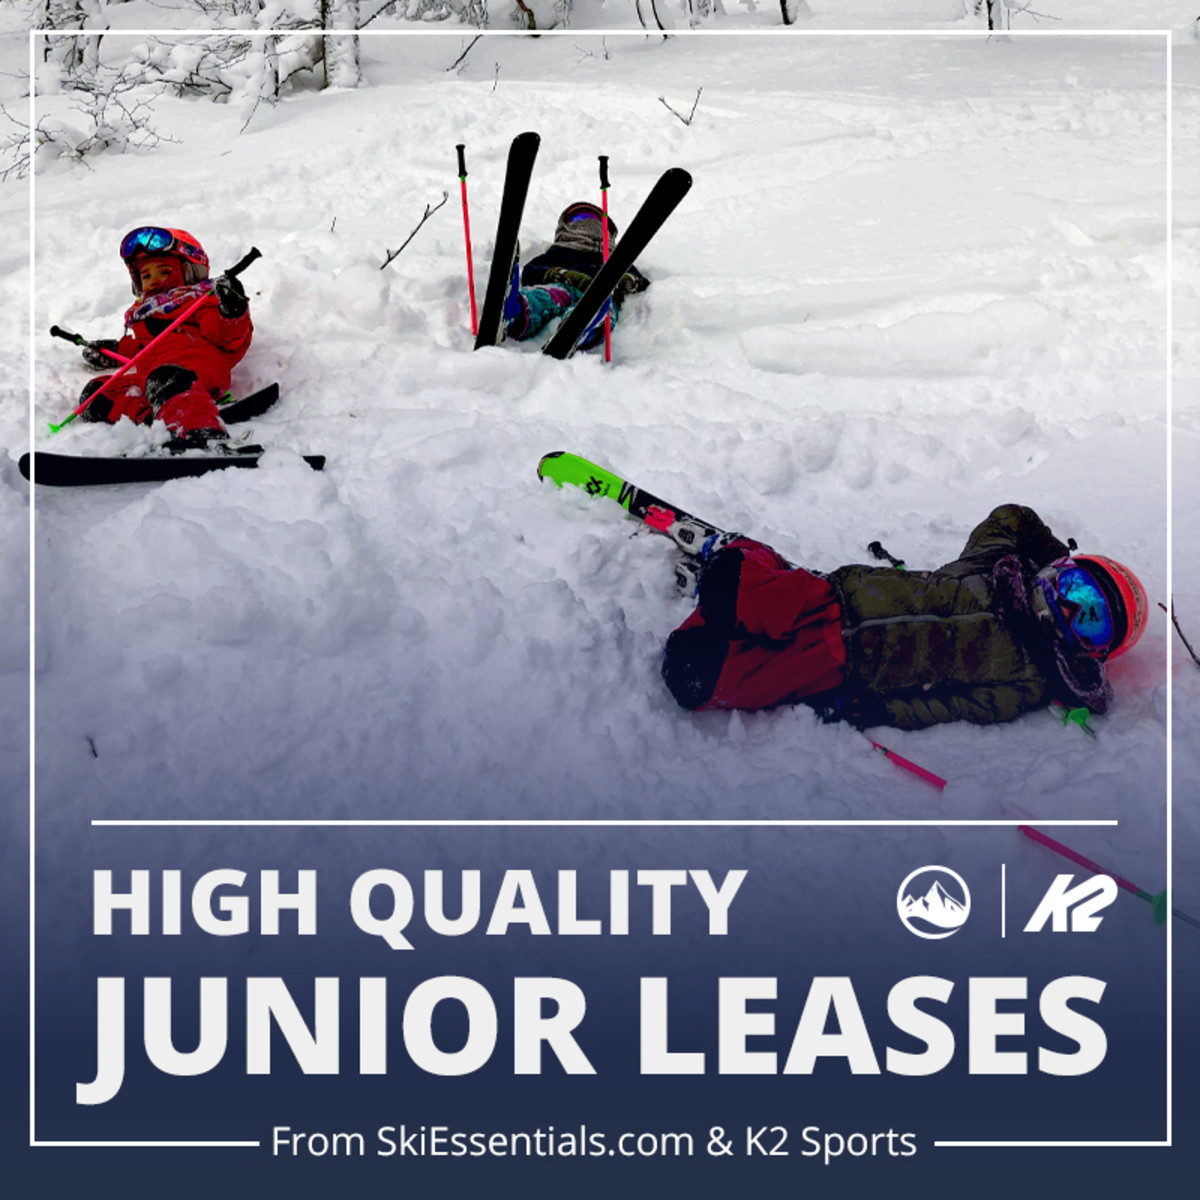 Easiest Ski and Snowboard Season Lease for Families